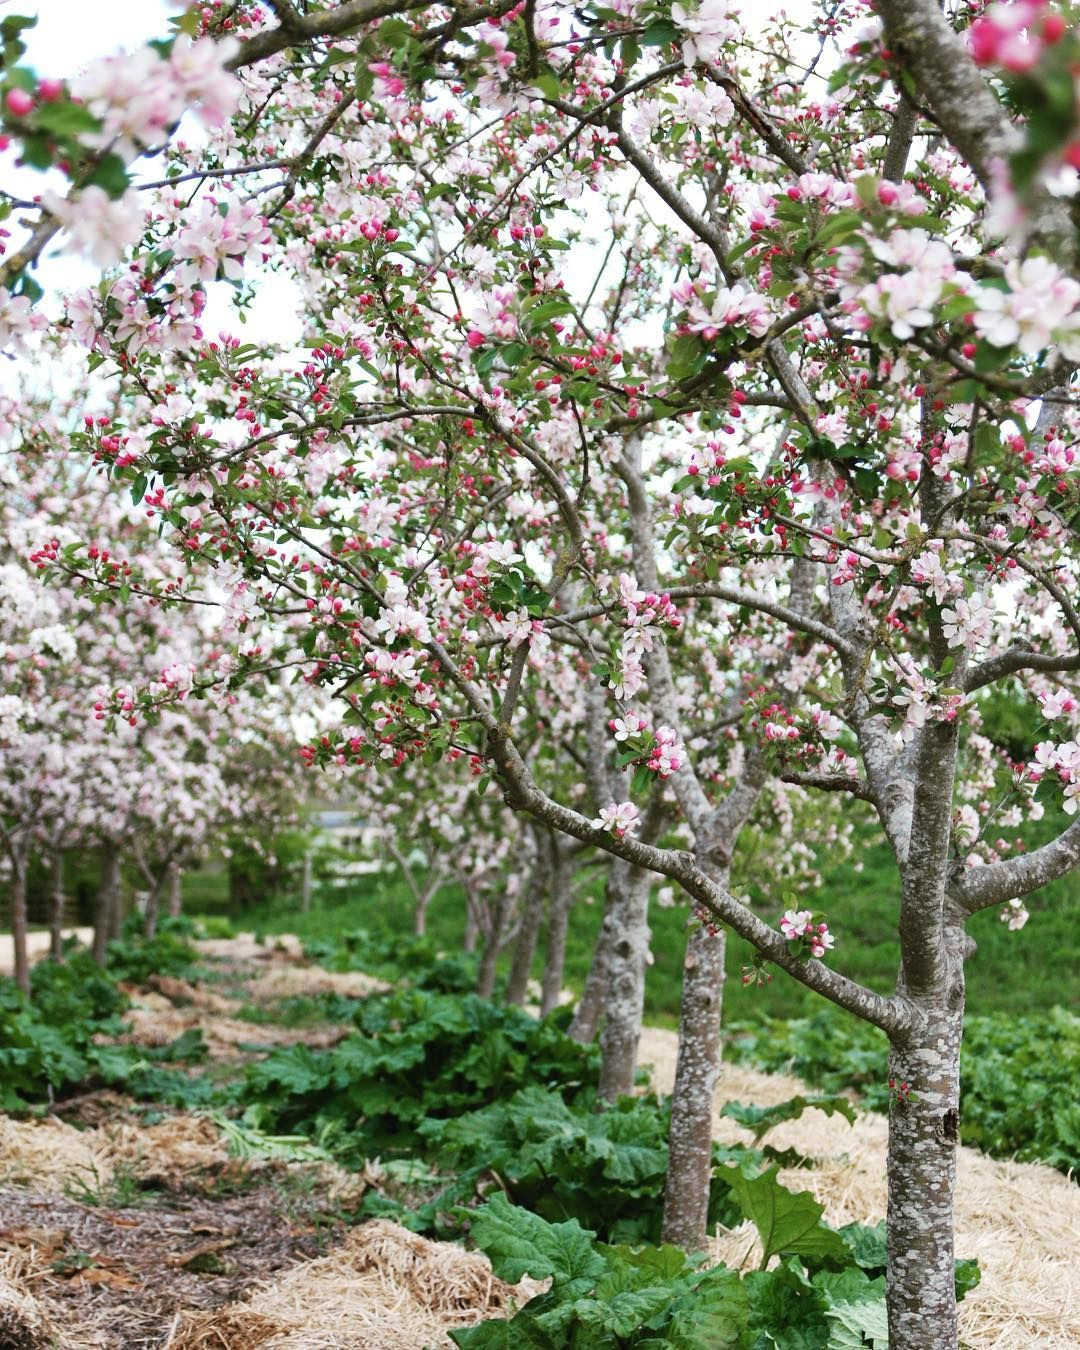 Carole Bamford On Instagram The Market Garden Daylesfordfarm Has Been Blossoming Our Apple Trees And Rhubarb Are Showing They Apple Tree Market Garden Tree